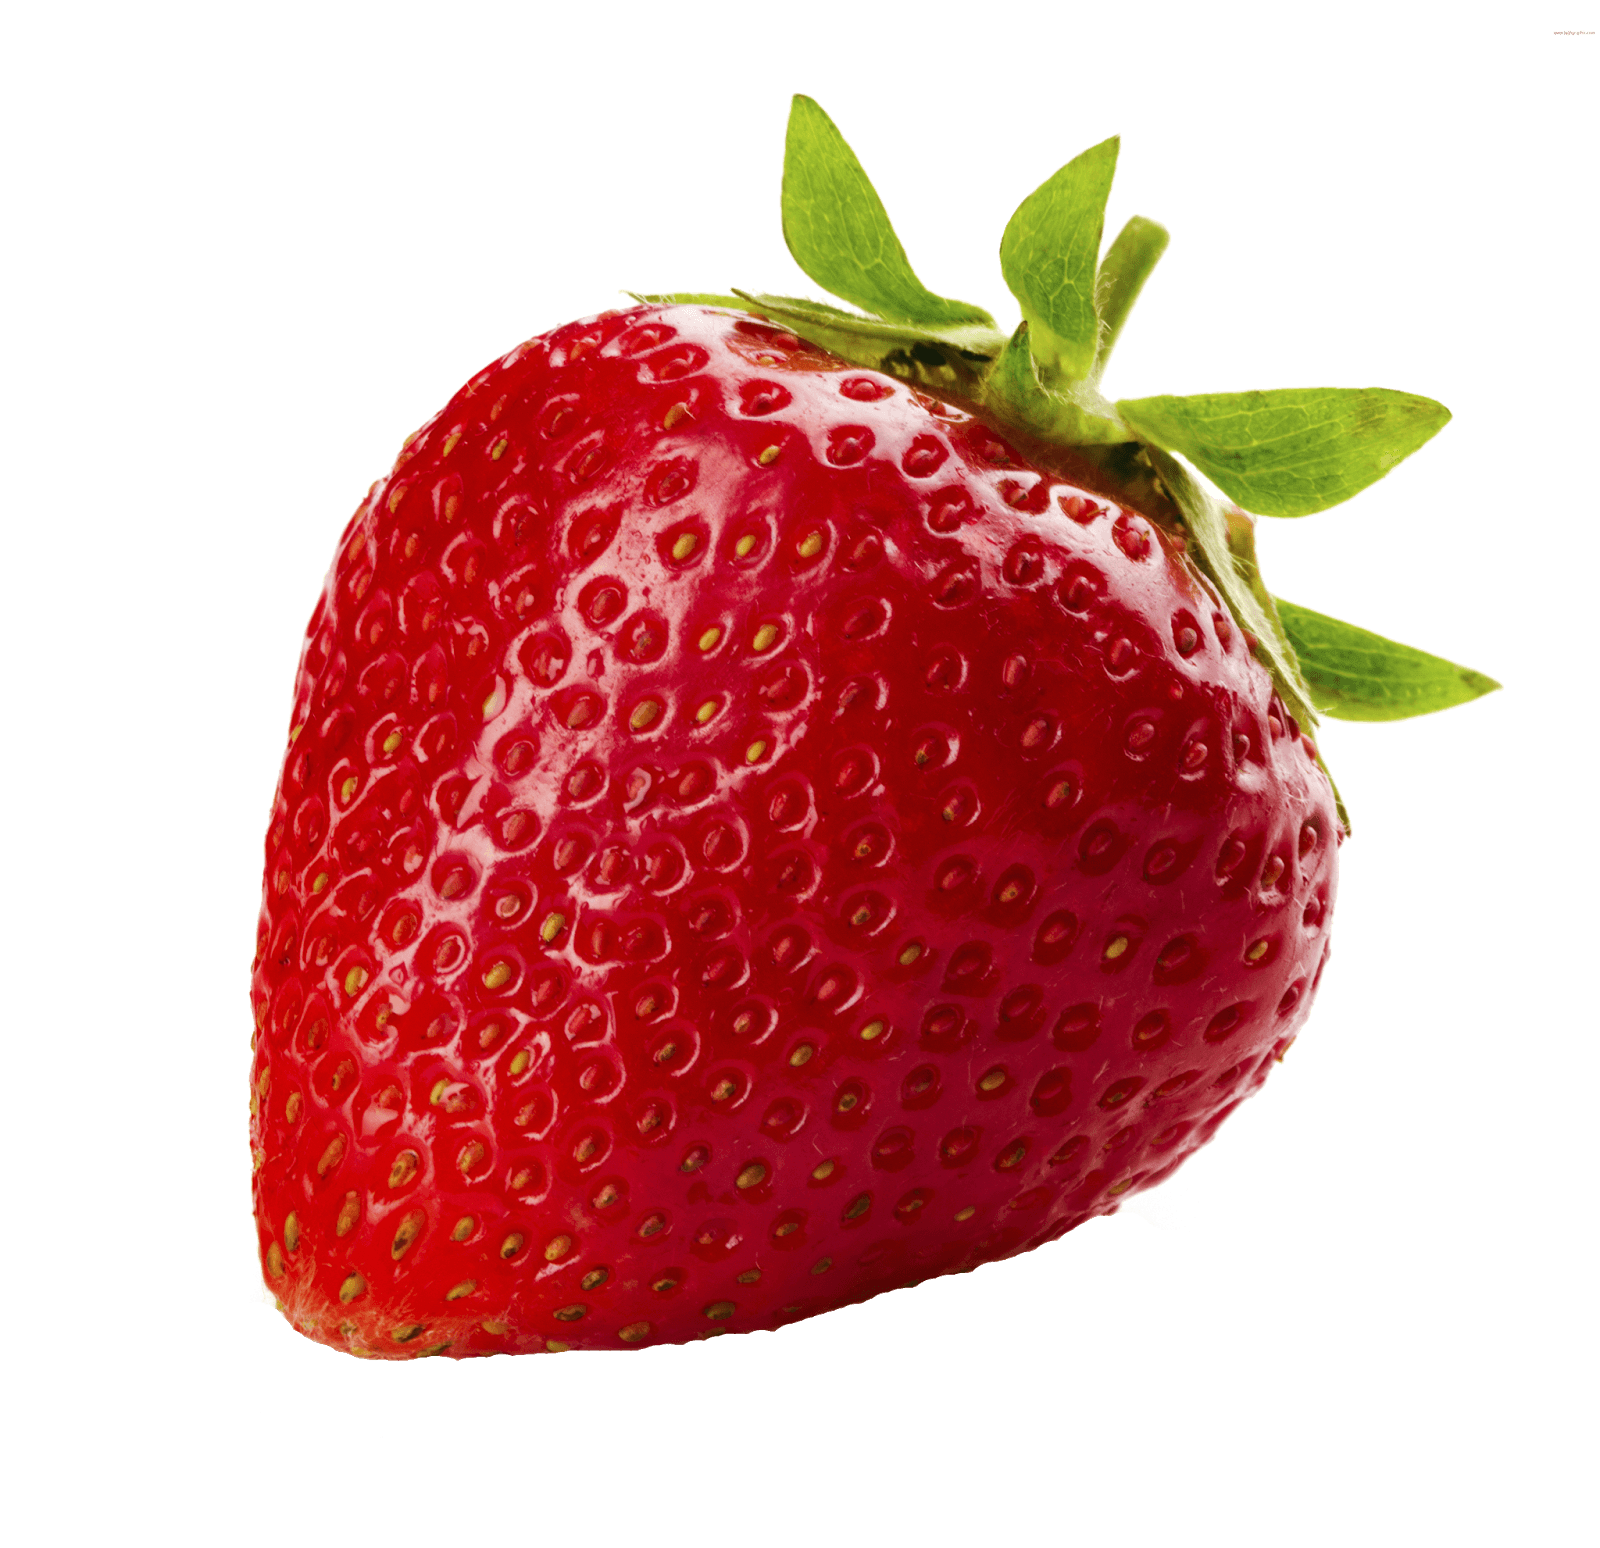 Group of strawberries transparent. Clipart png strawberry